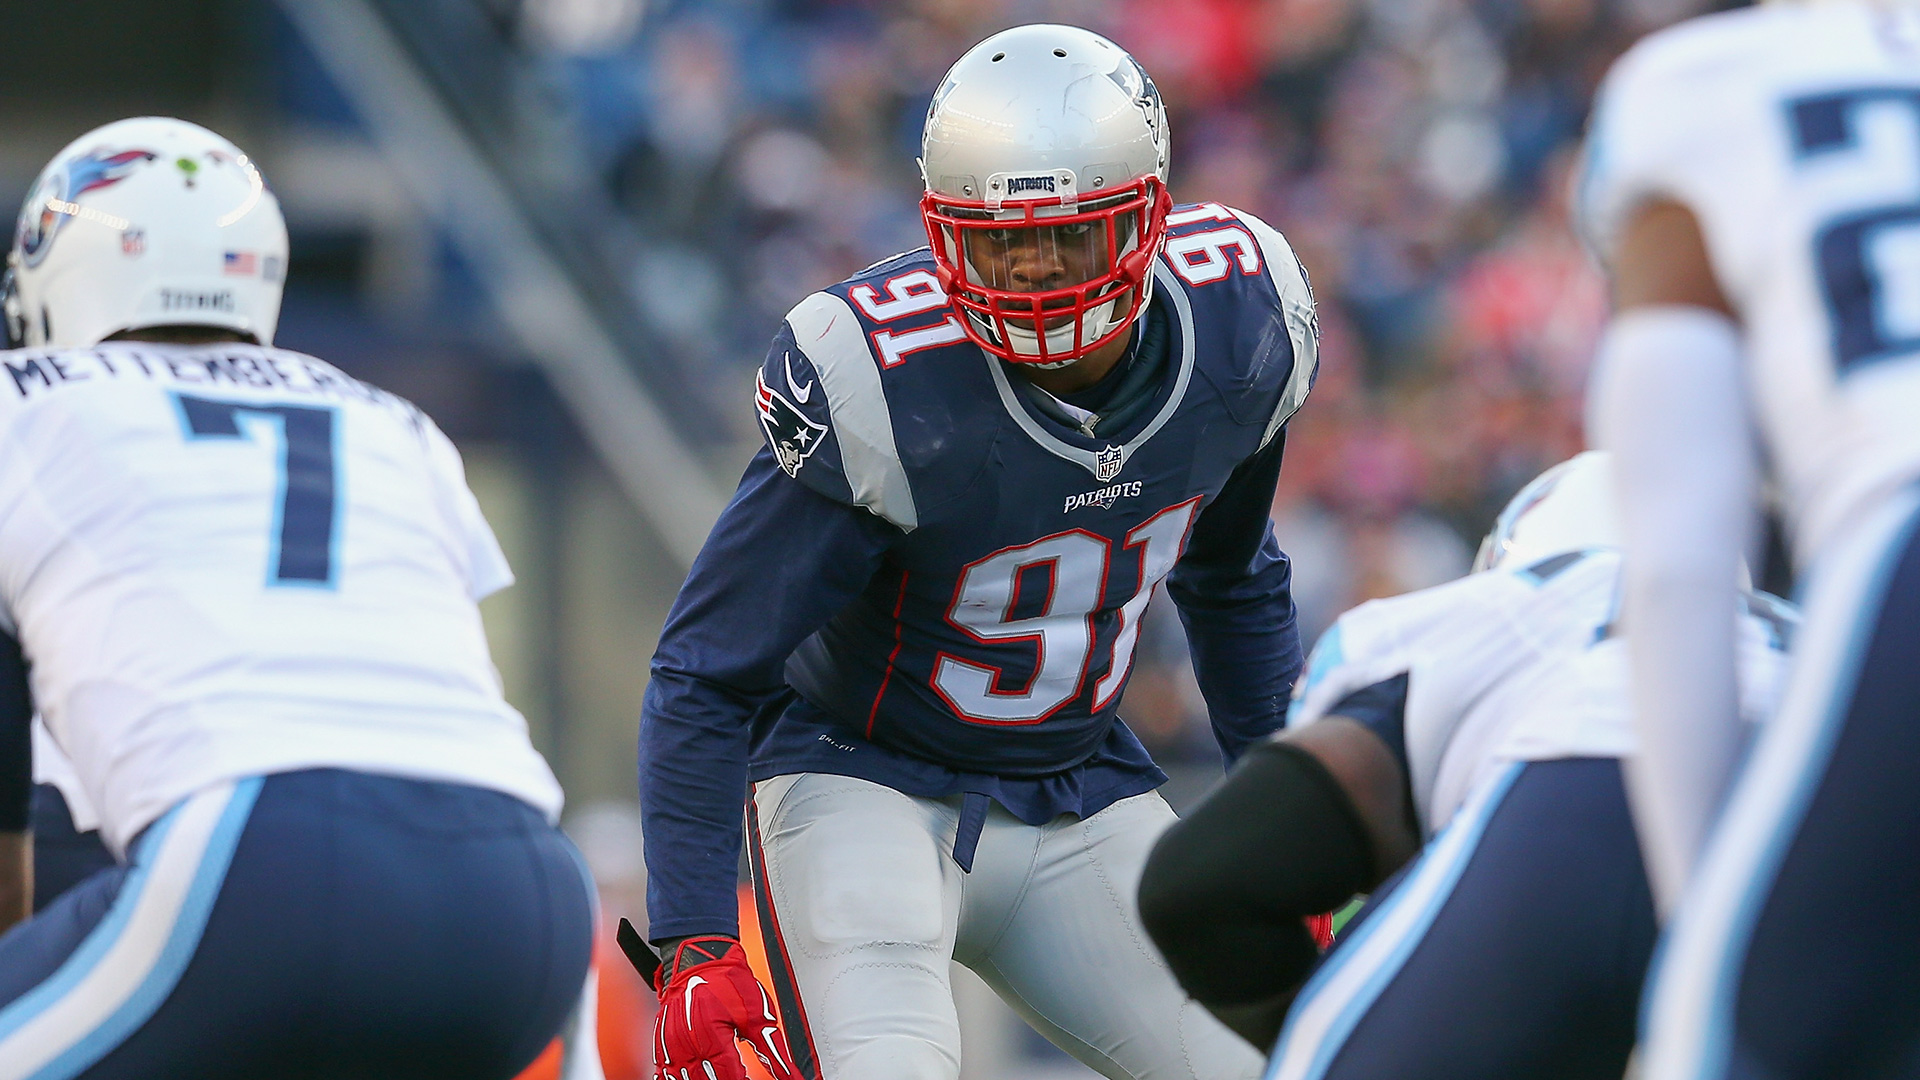 Patriots call to trade Jamie Collins was tough but correct